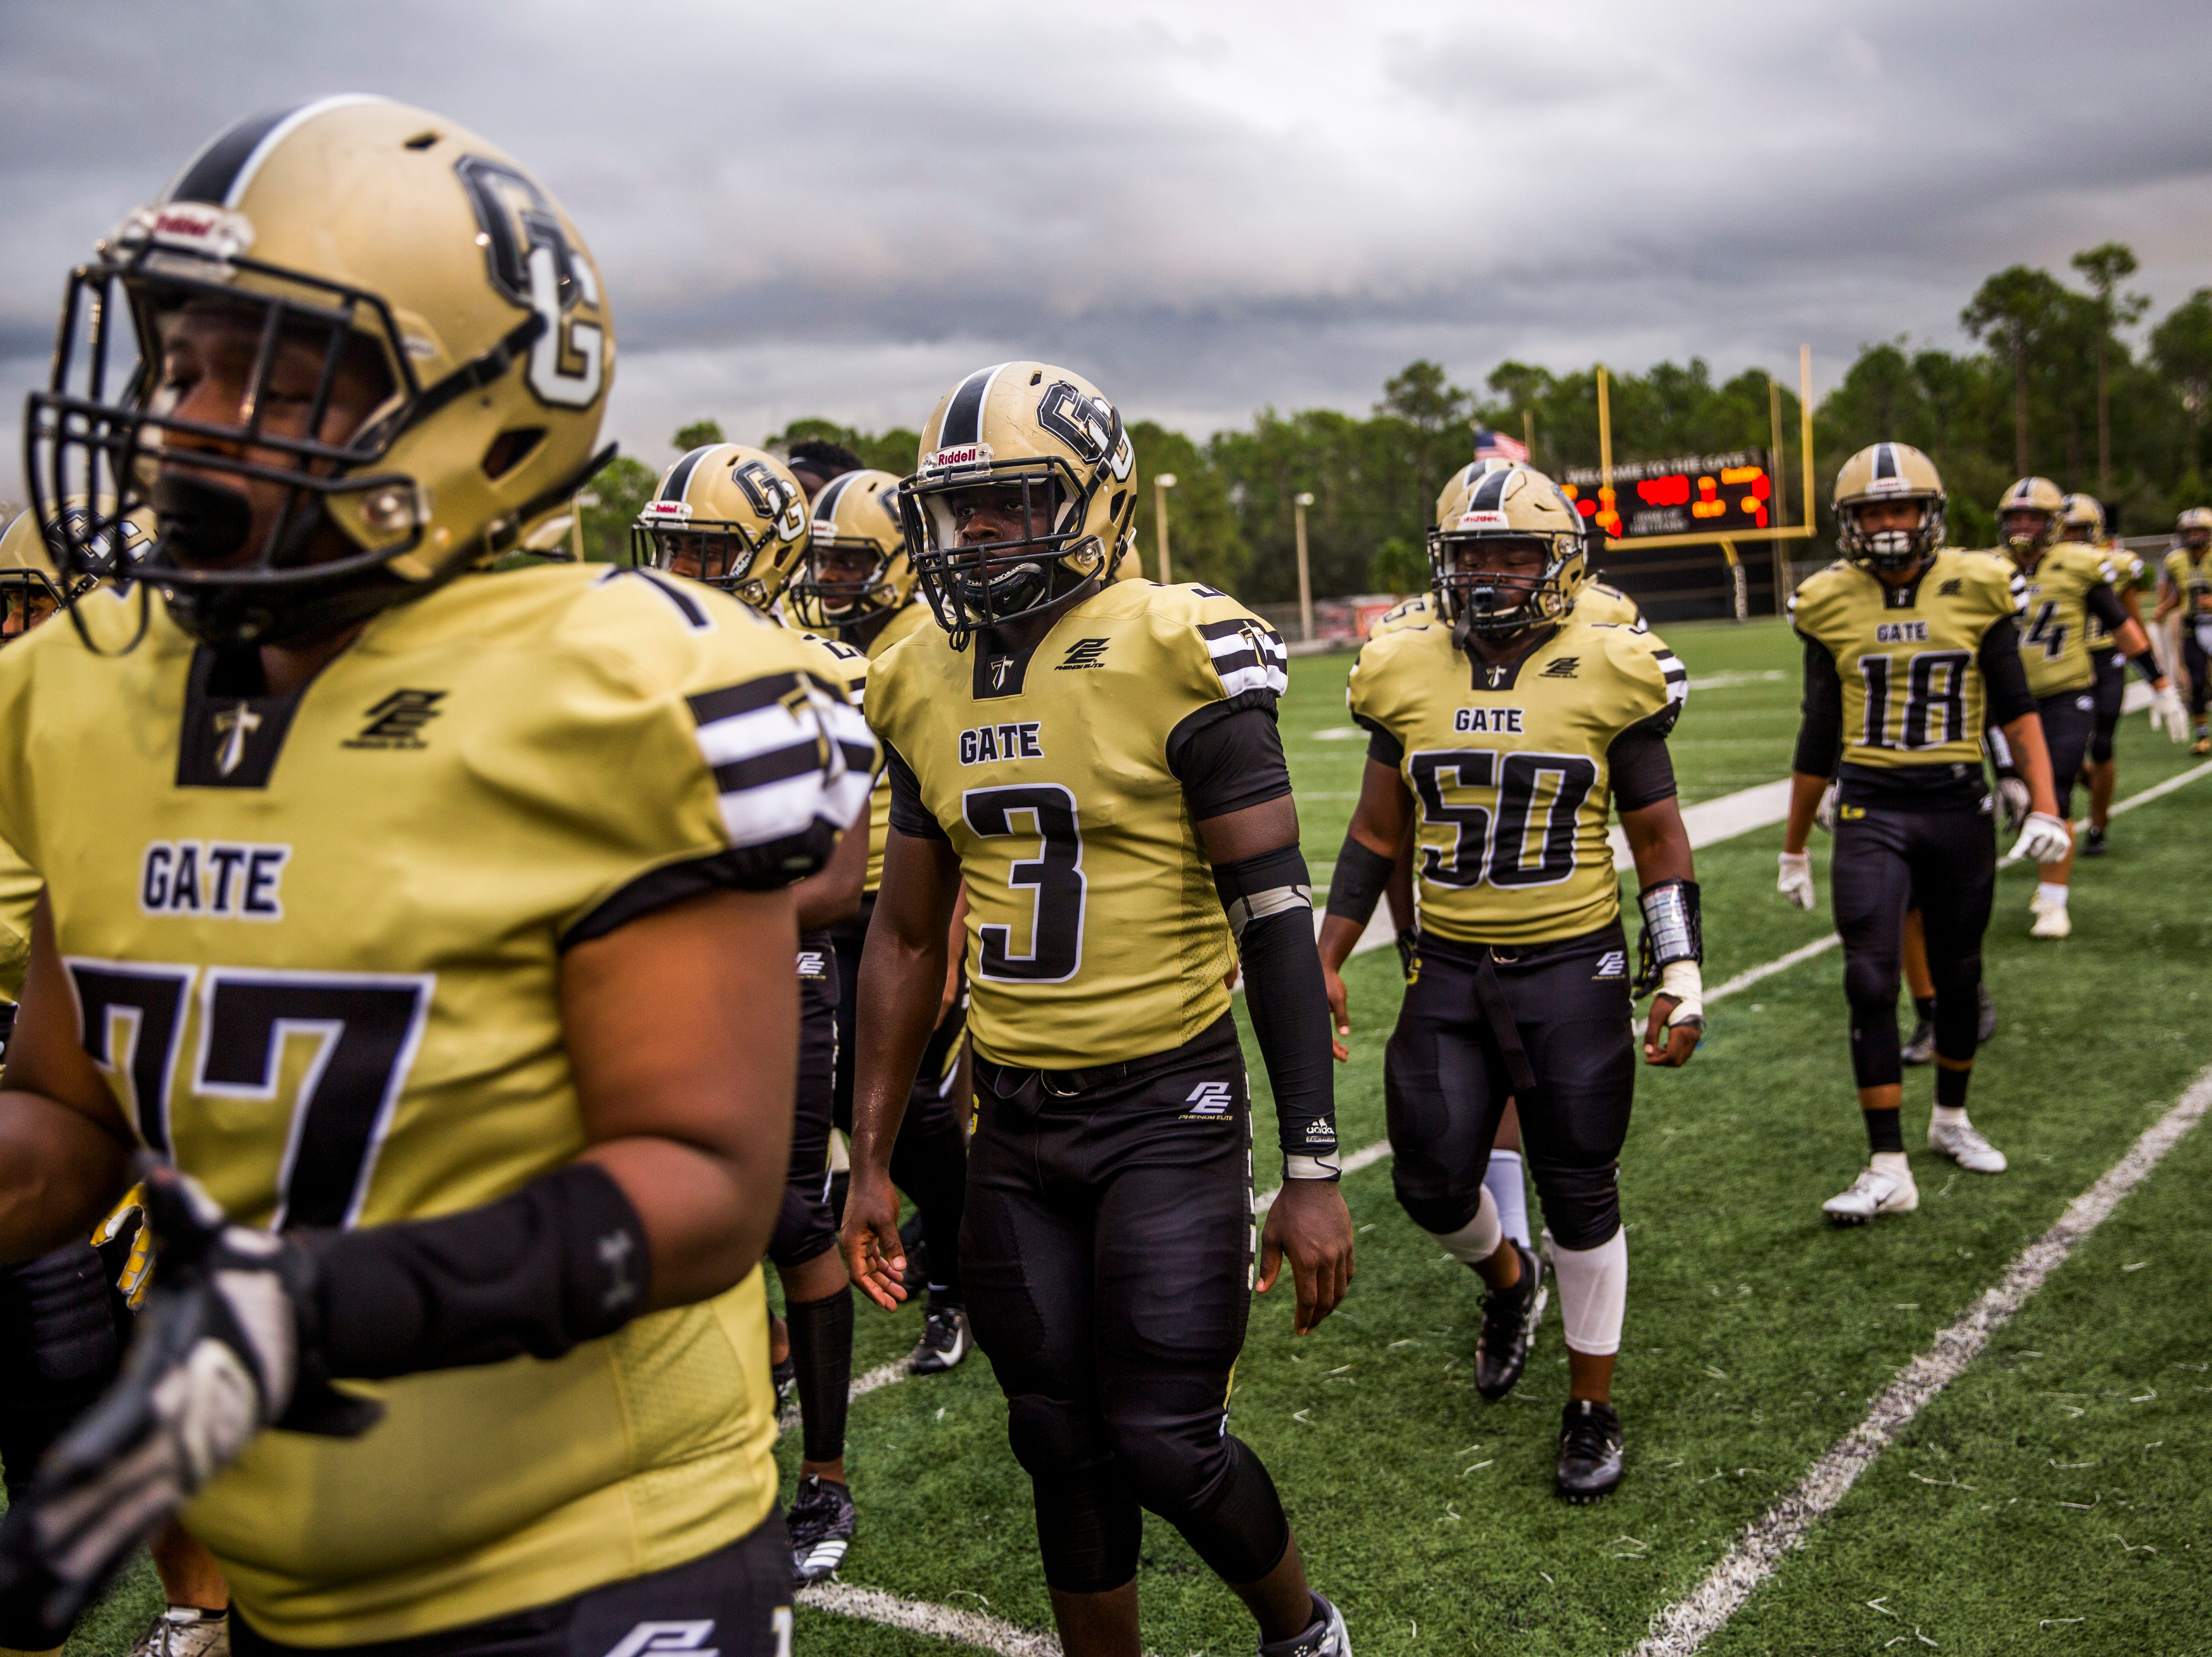 Golden Gate players leave the field during a lightning delay during the game against Immokalee at Golden Gate High School on Friday, Aug. 24, 2018.